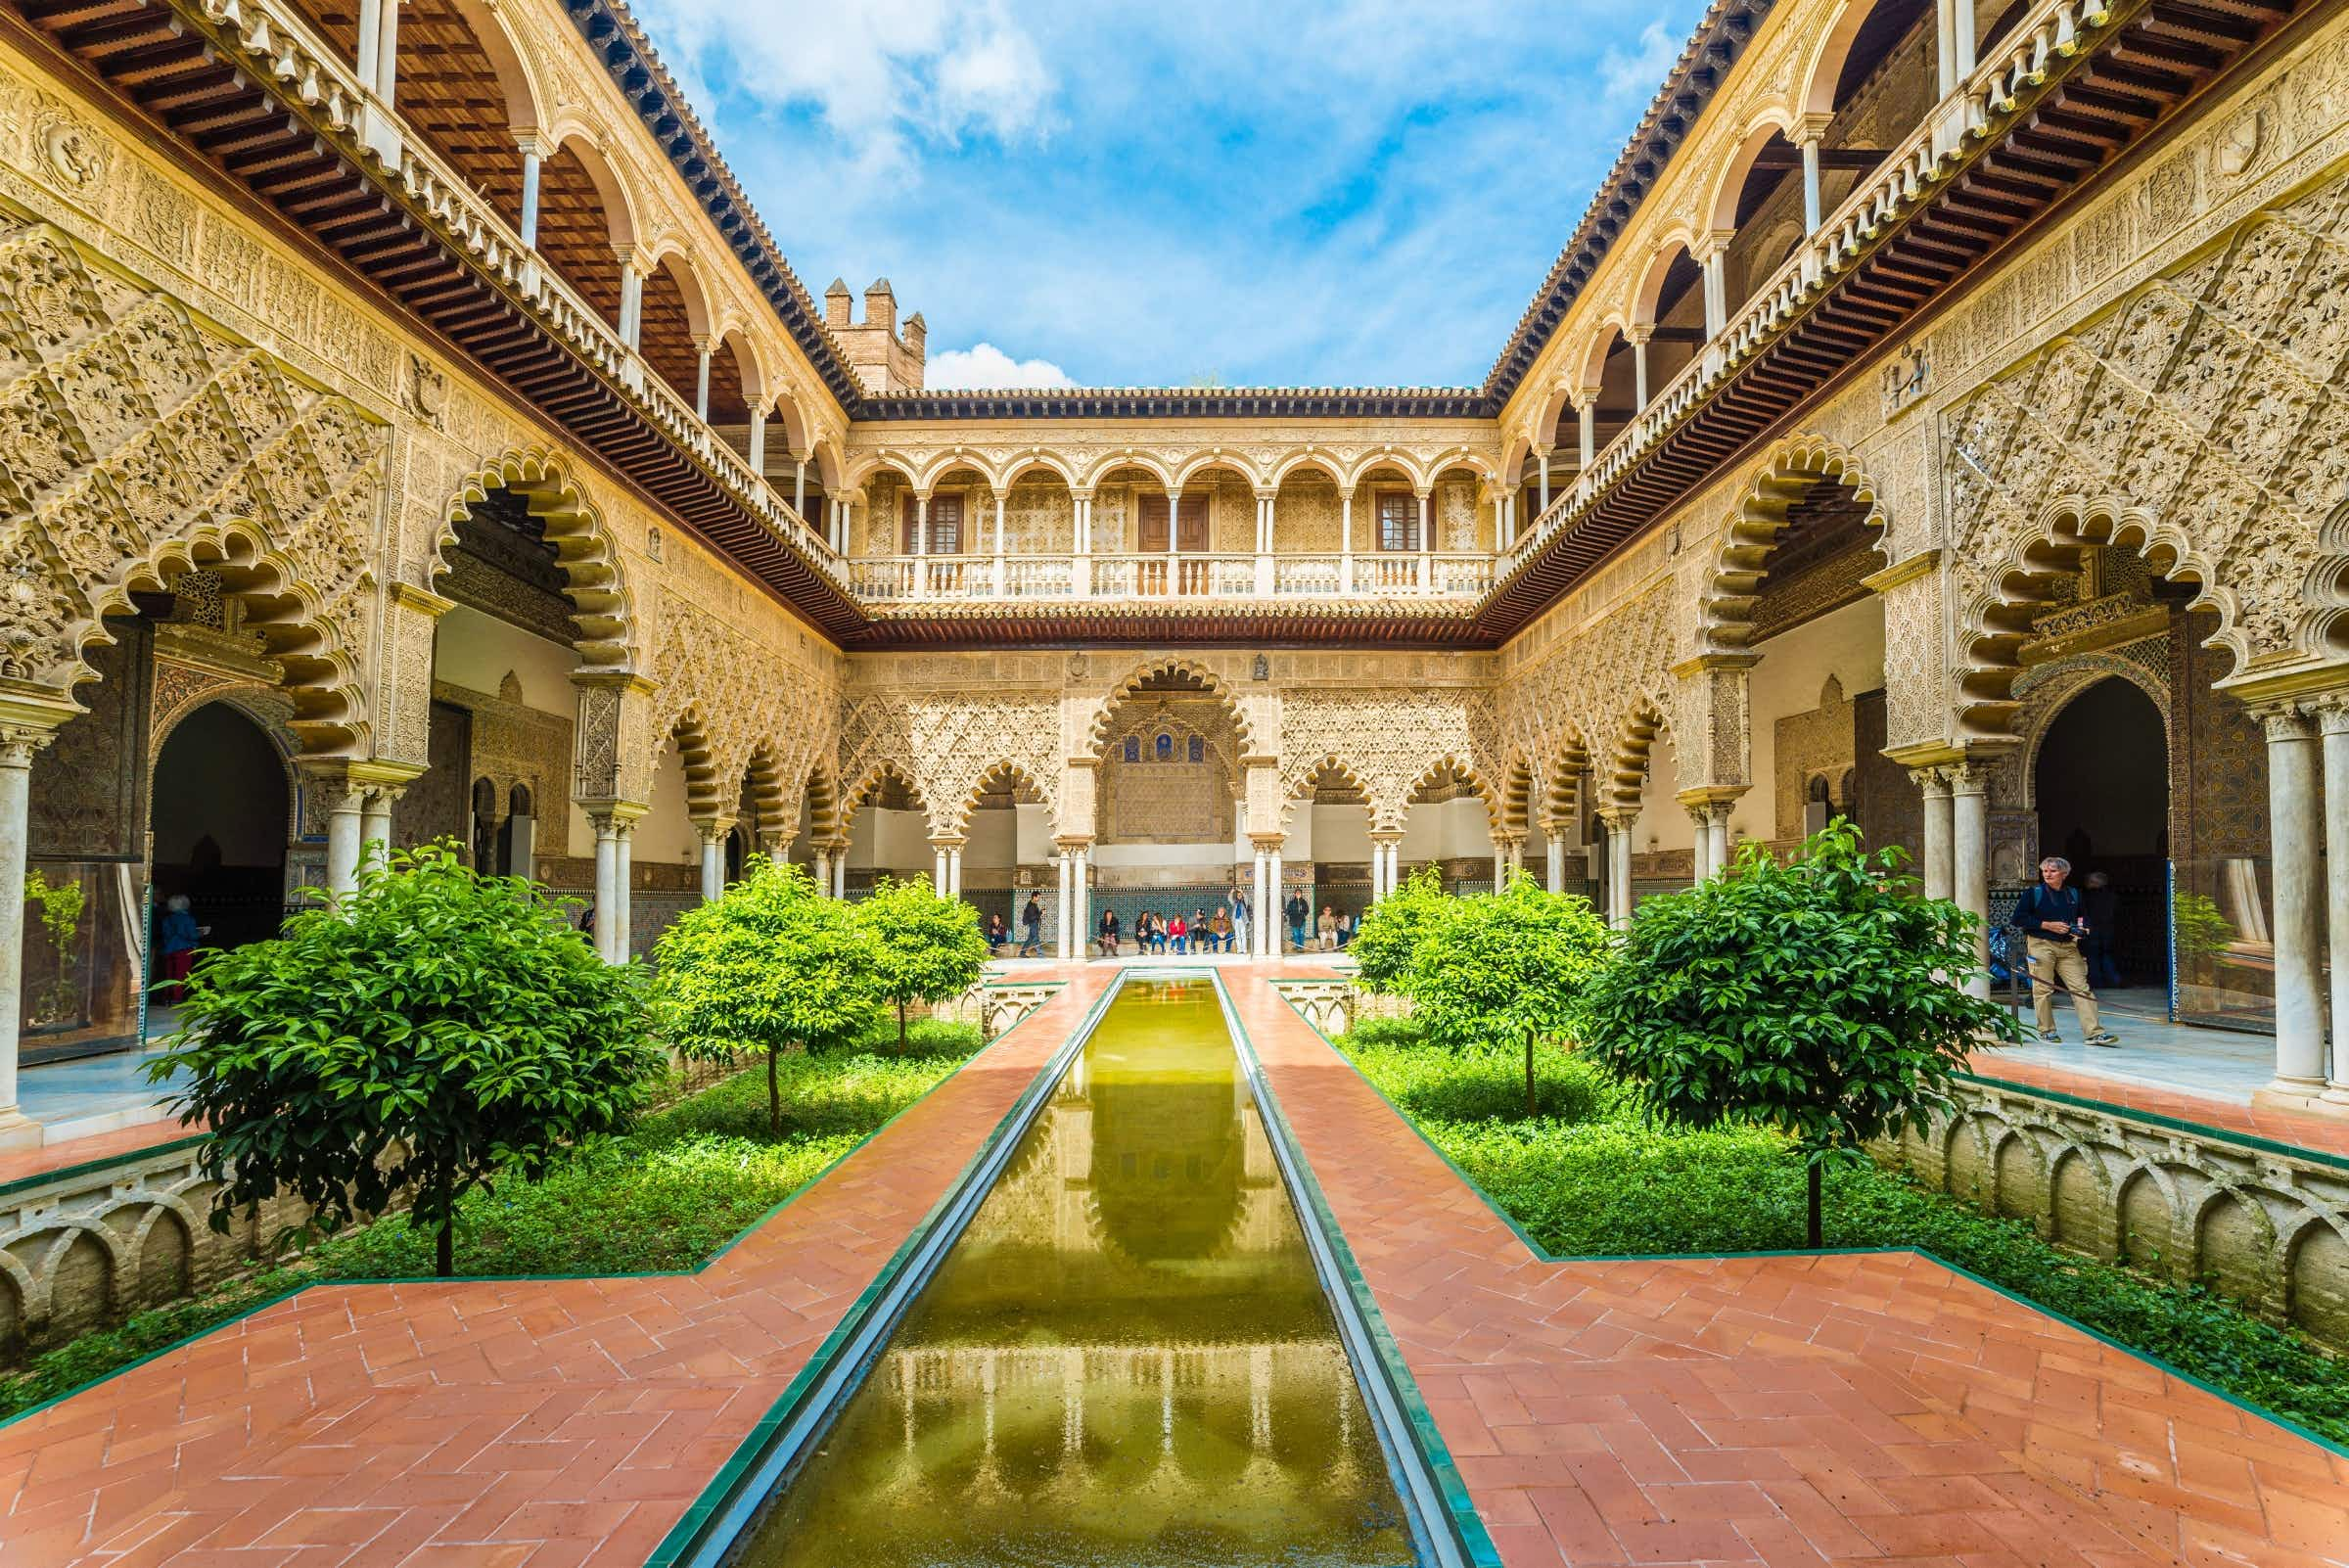 Seville is celebrating the historic 500th anniversary of Magellan's voyage